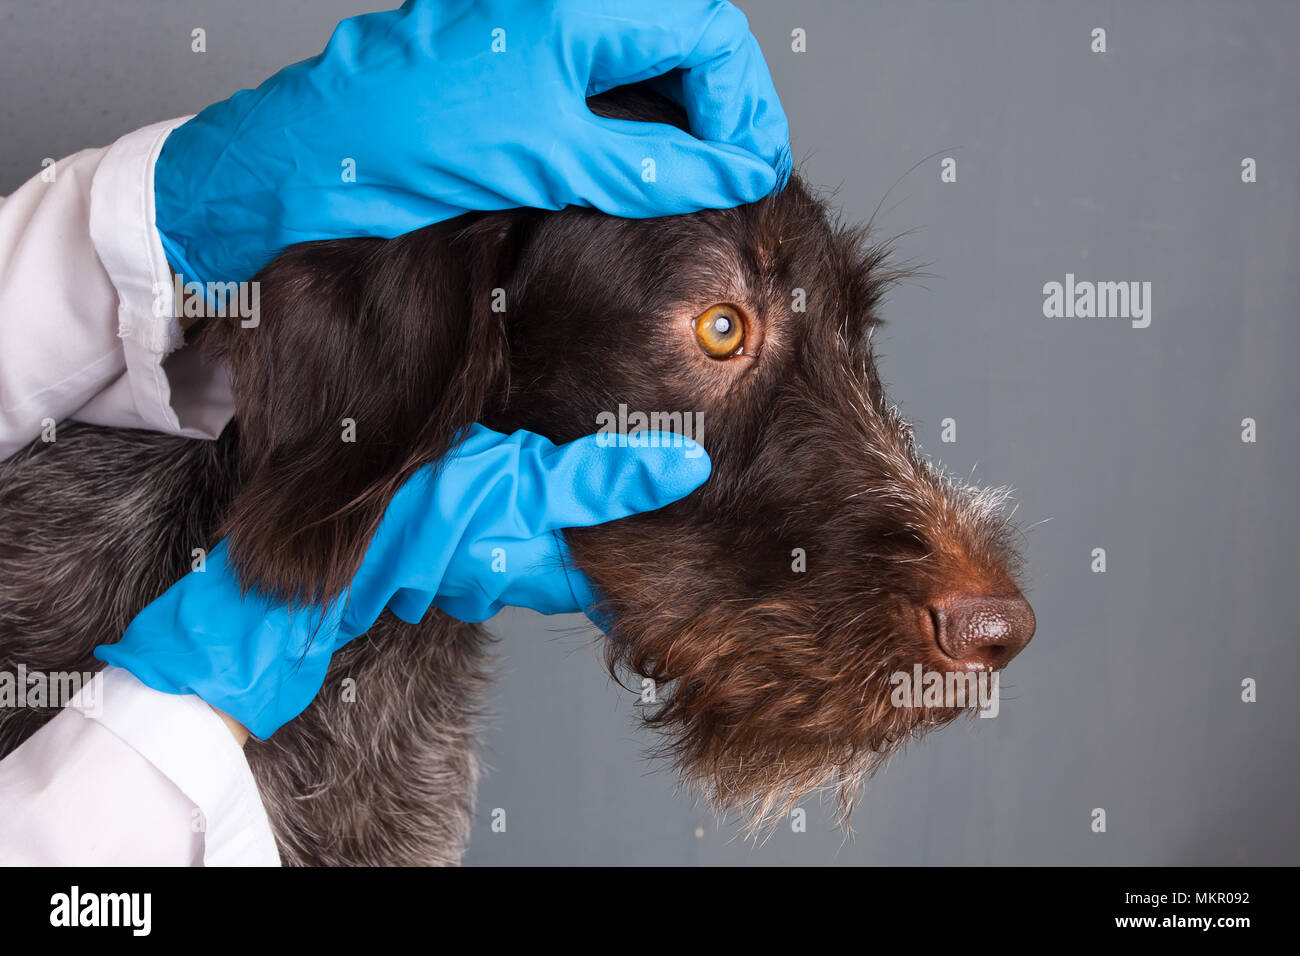 hands of veterinarian checking eyes of dog in vet clinic - Stock Image